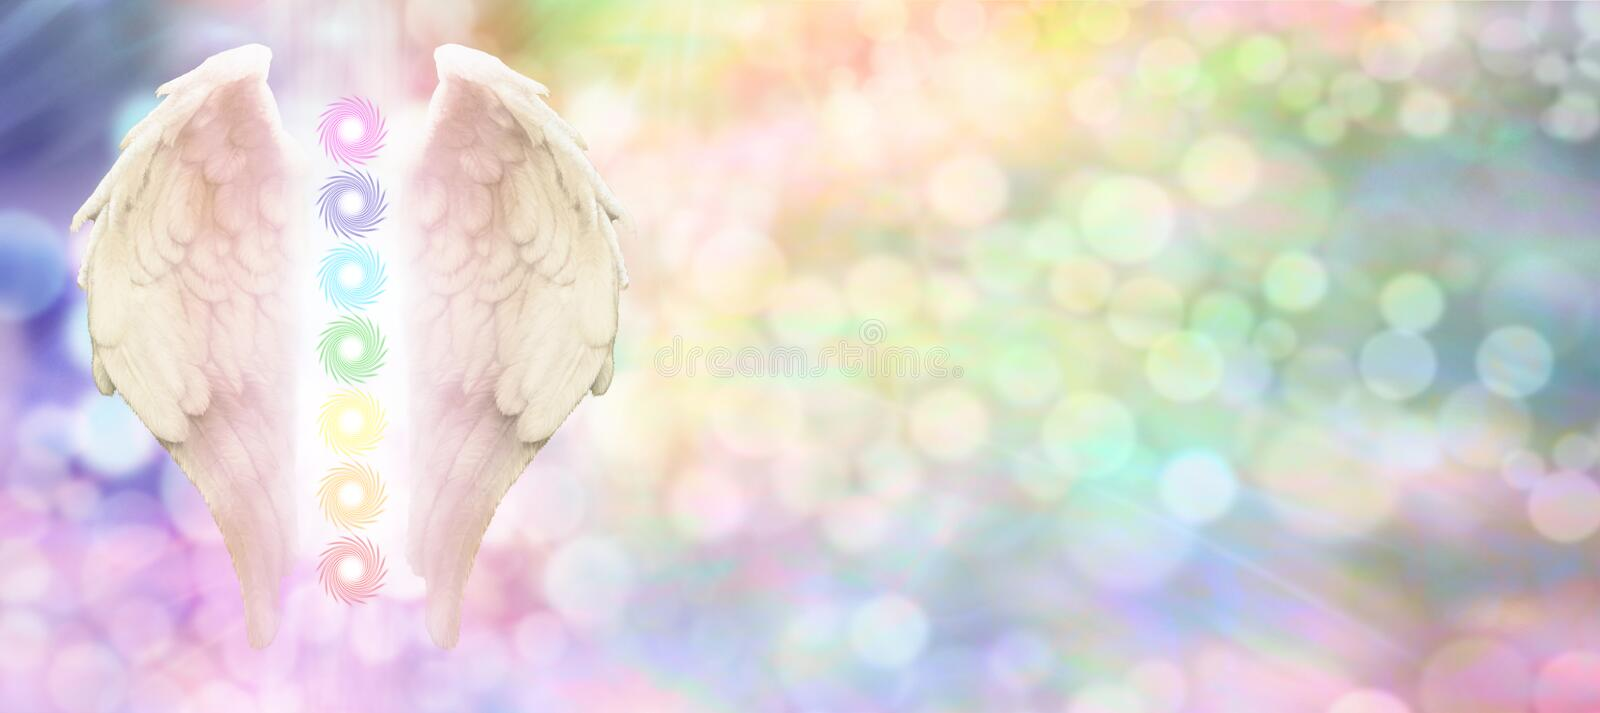 Reiki Angel Wings and Seven Chakras website header stock photography